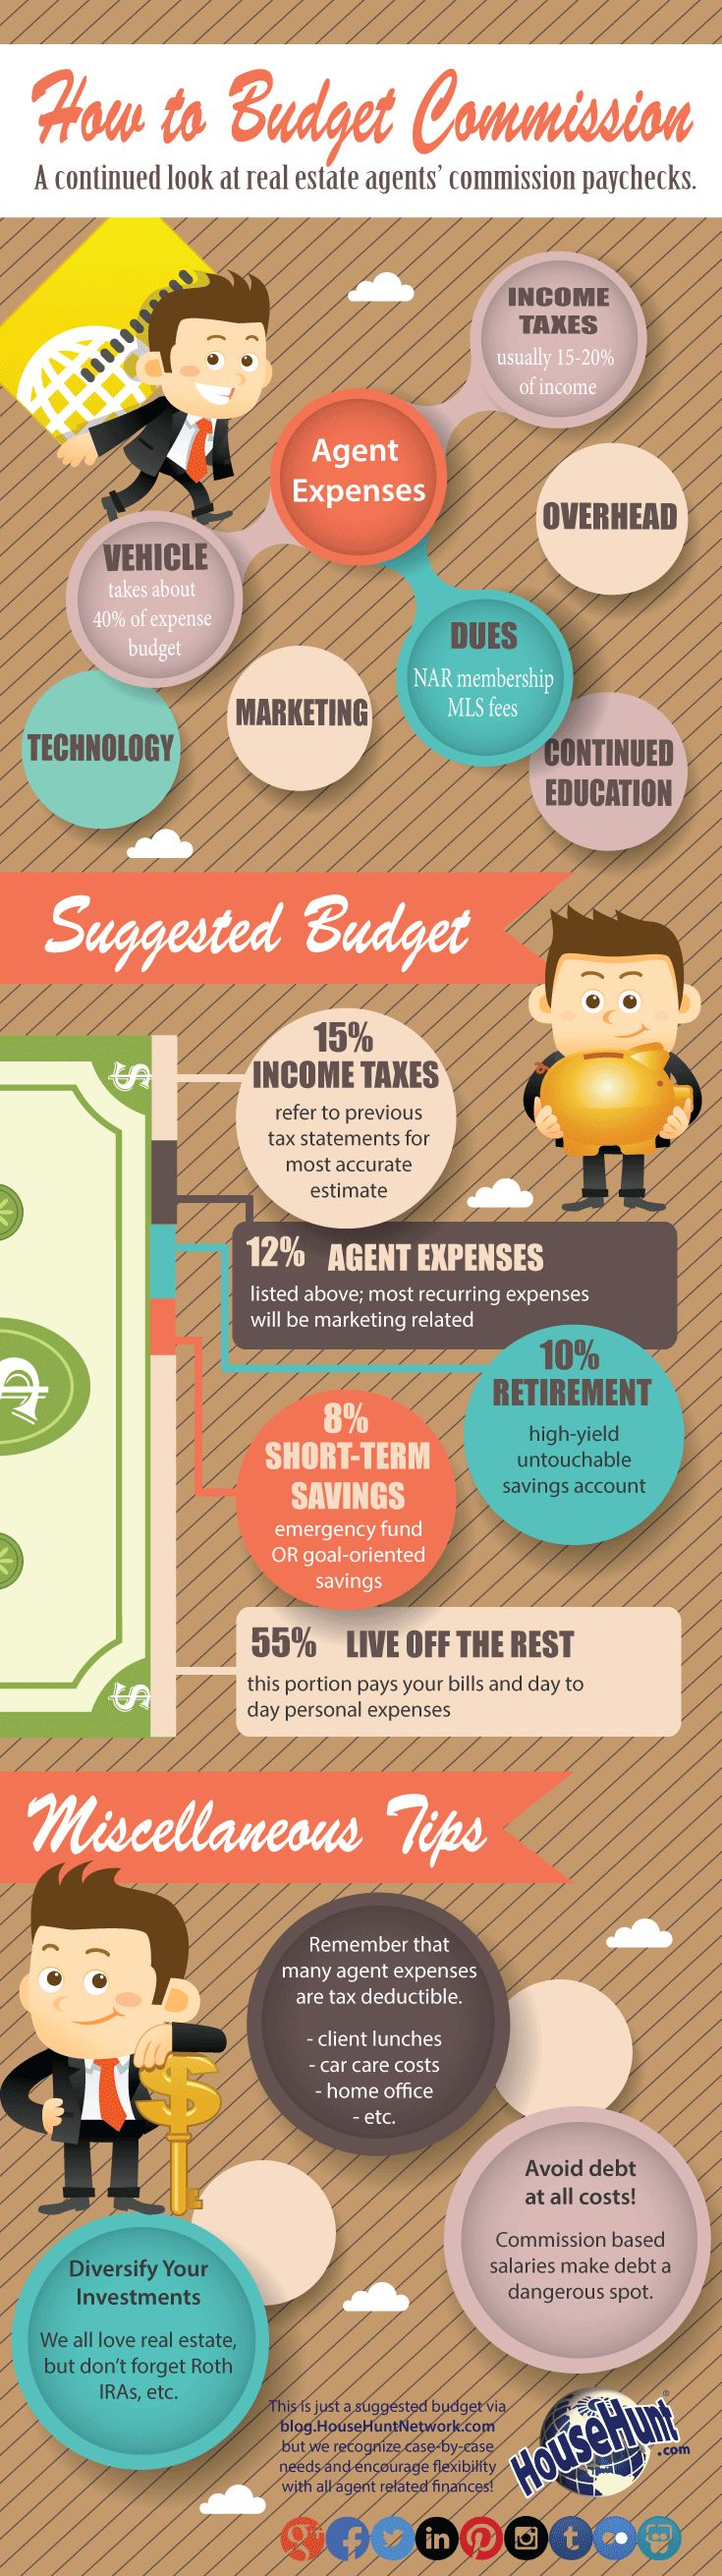 This infographic has a suggested plan to help you budget commission based paychecks like in real estate.